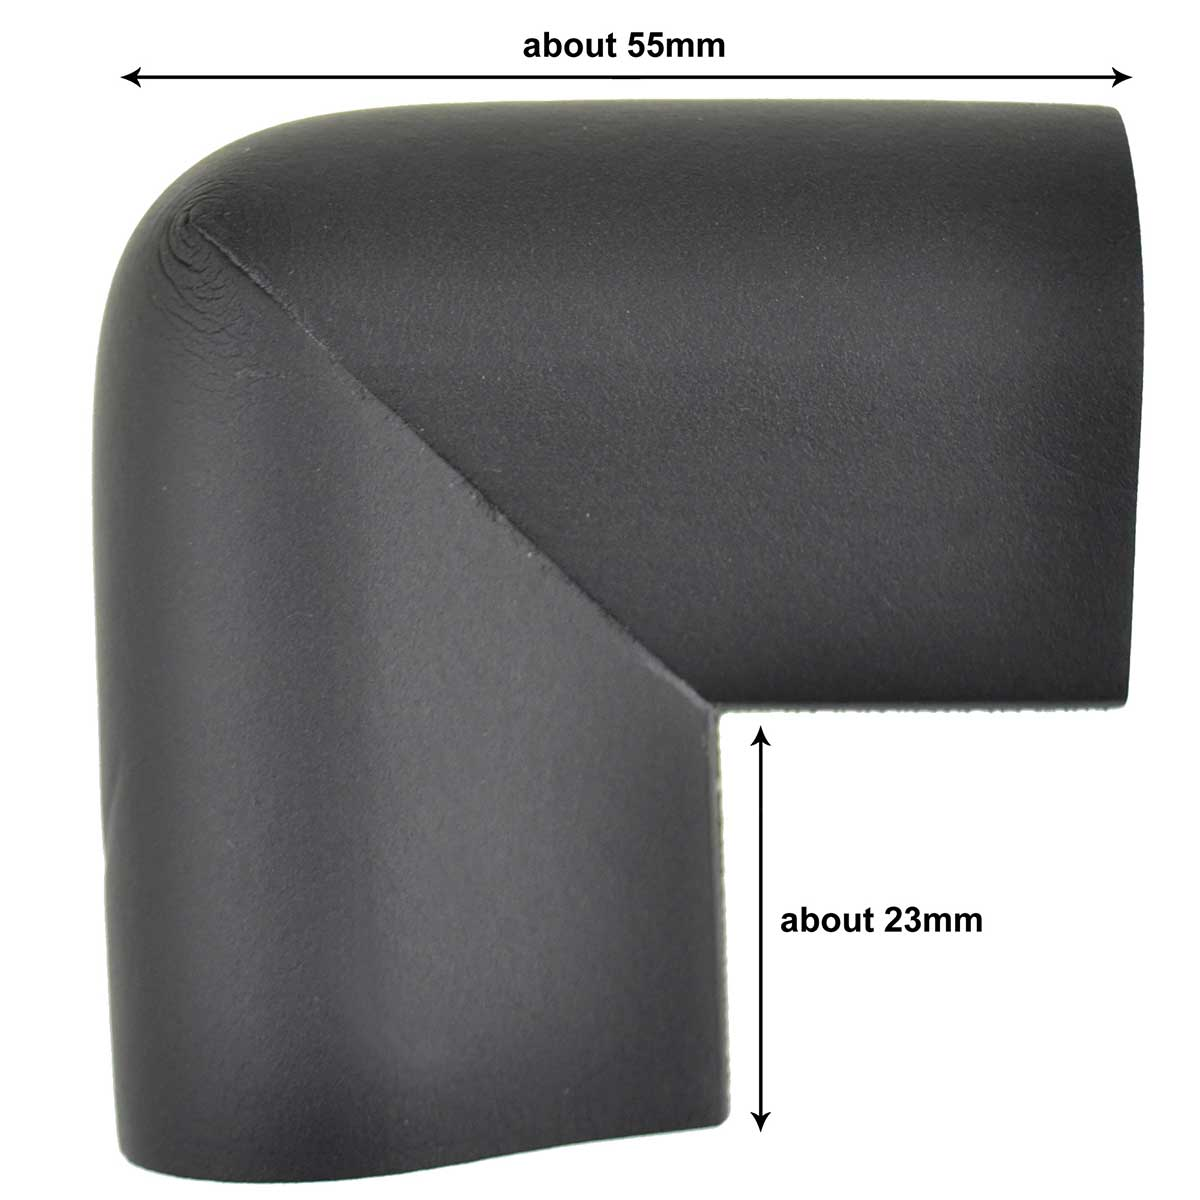 12 Pieces Black U-Shaped Foam Corner Protectors